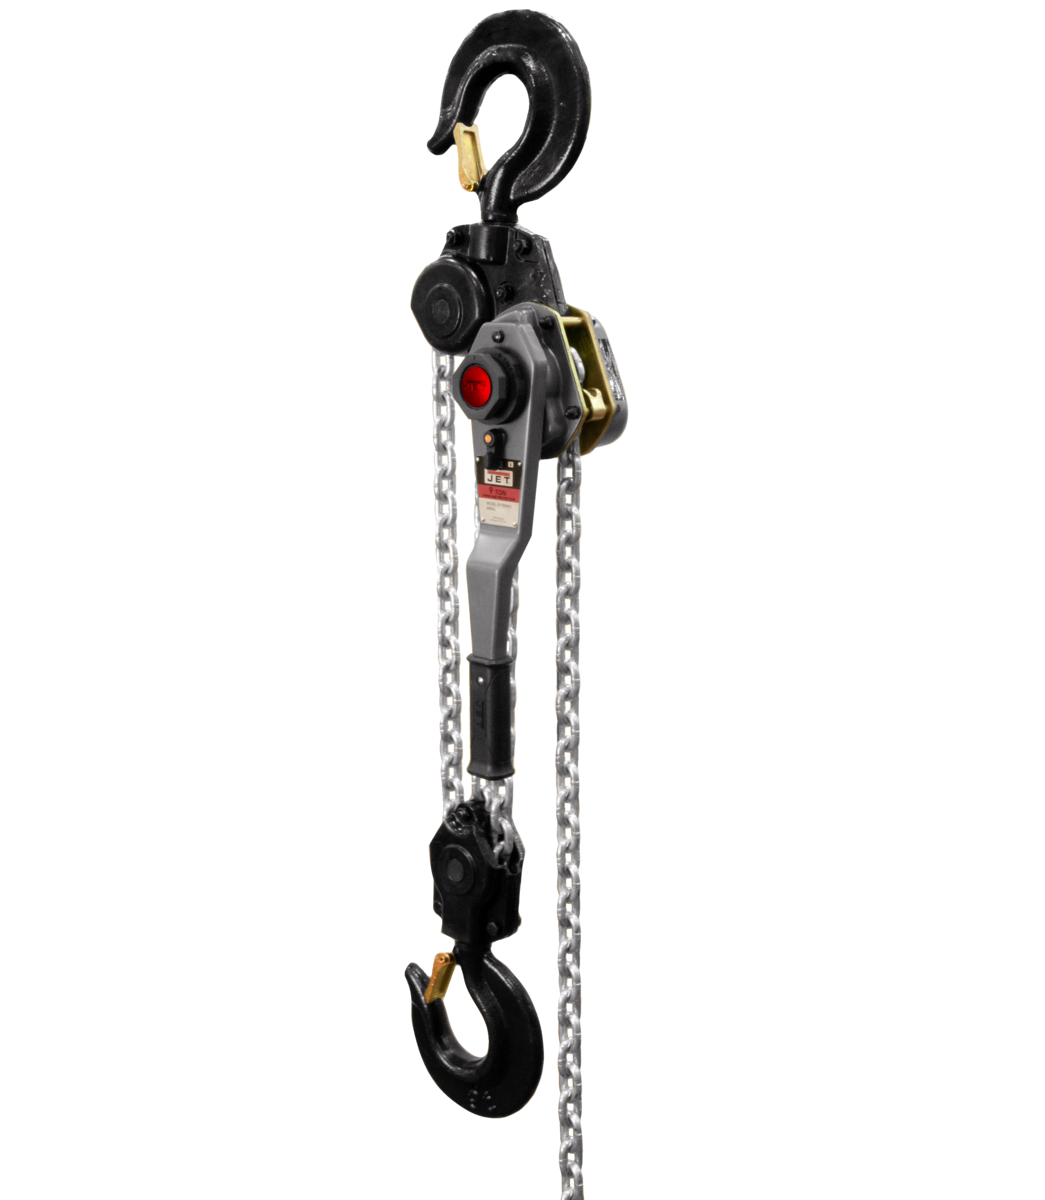 JLH Series 9 Ton Lever Hoist, 15' Lift with Overload Protection